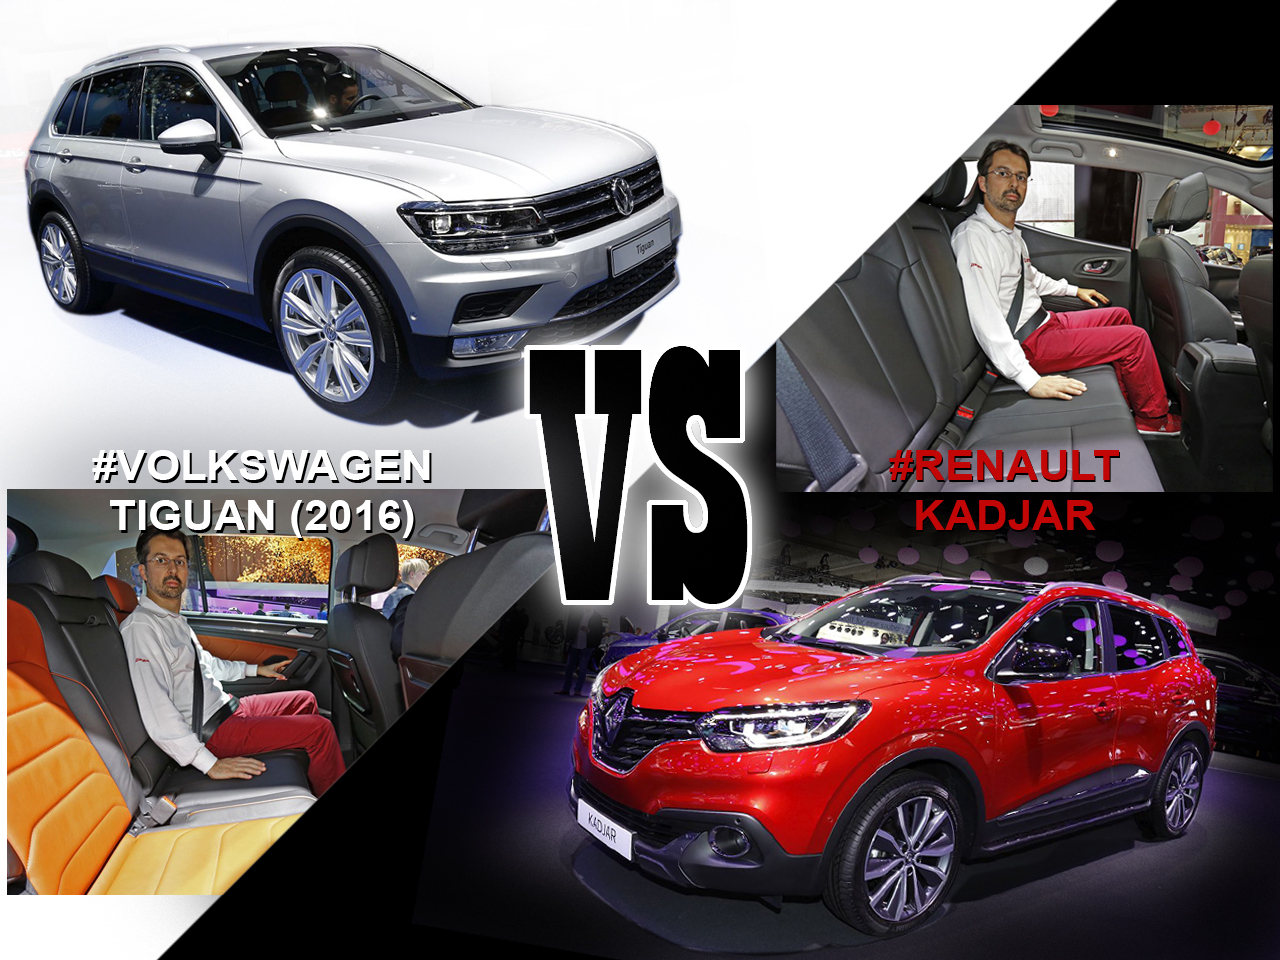 volkswagen tiguan 2016 vs renault kadjar le match depuis francfort renault auto evasion. Black Bedroom Furniture Sets. Home Design Ideas